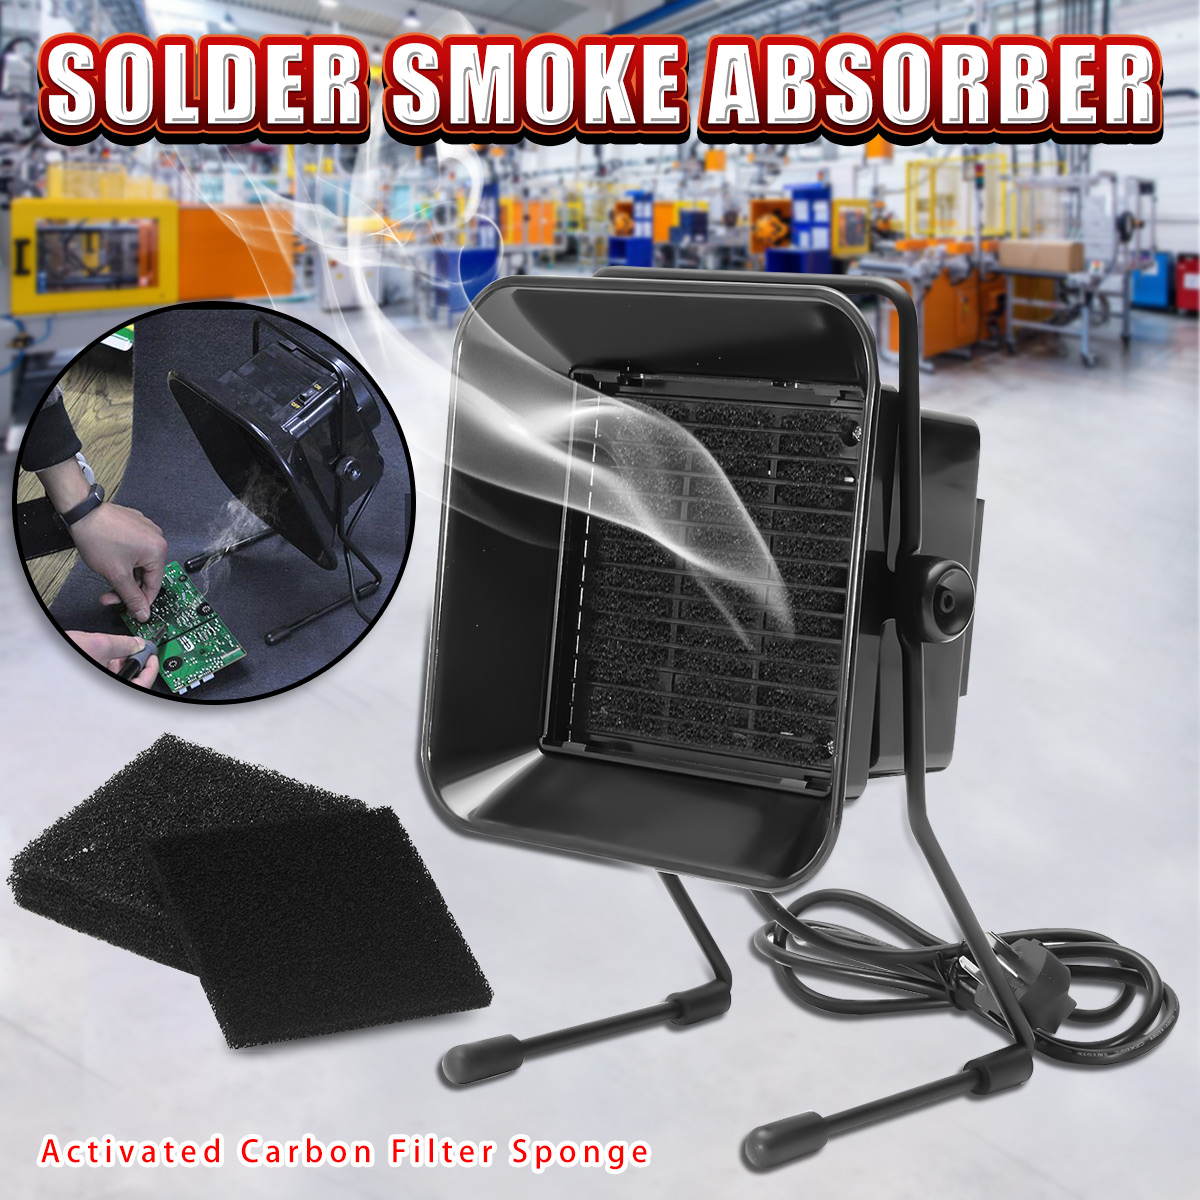 220V 16W Portable Solder Smoke Absorber ESD Fume Extractor For Soldering Iron Work Soldering Smoking Fan With Filter Sponge